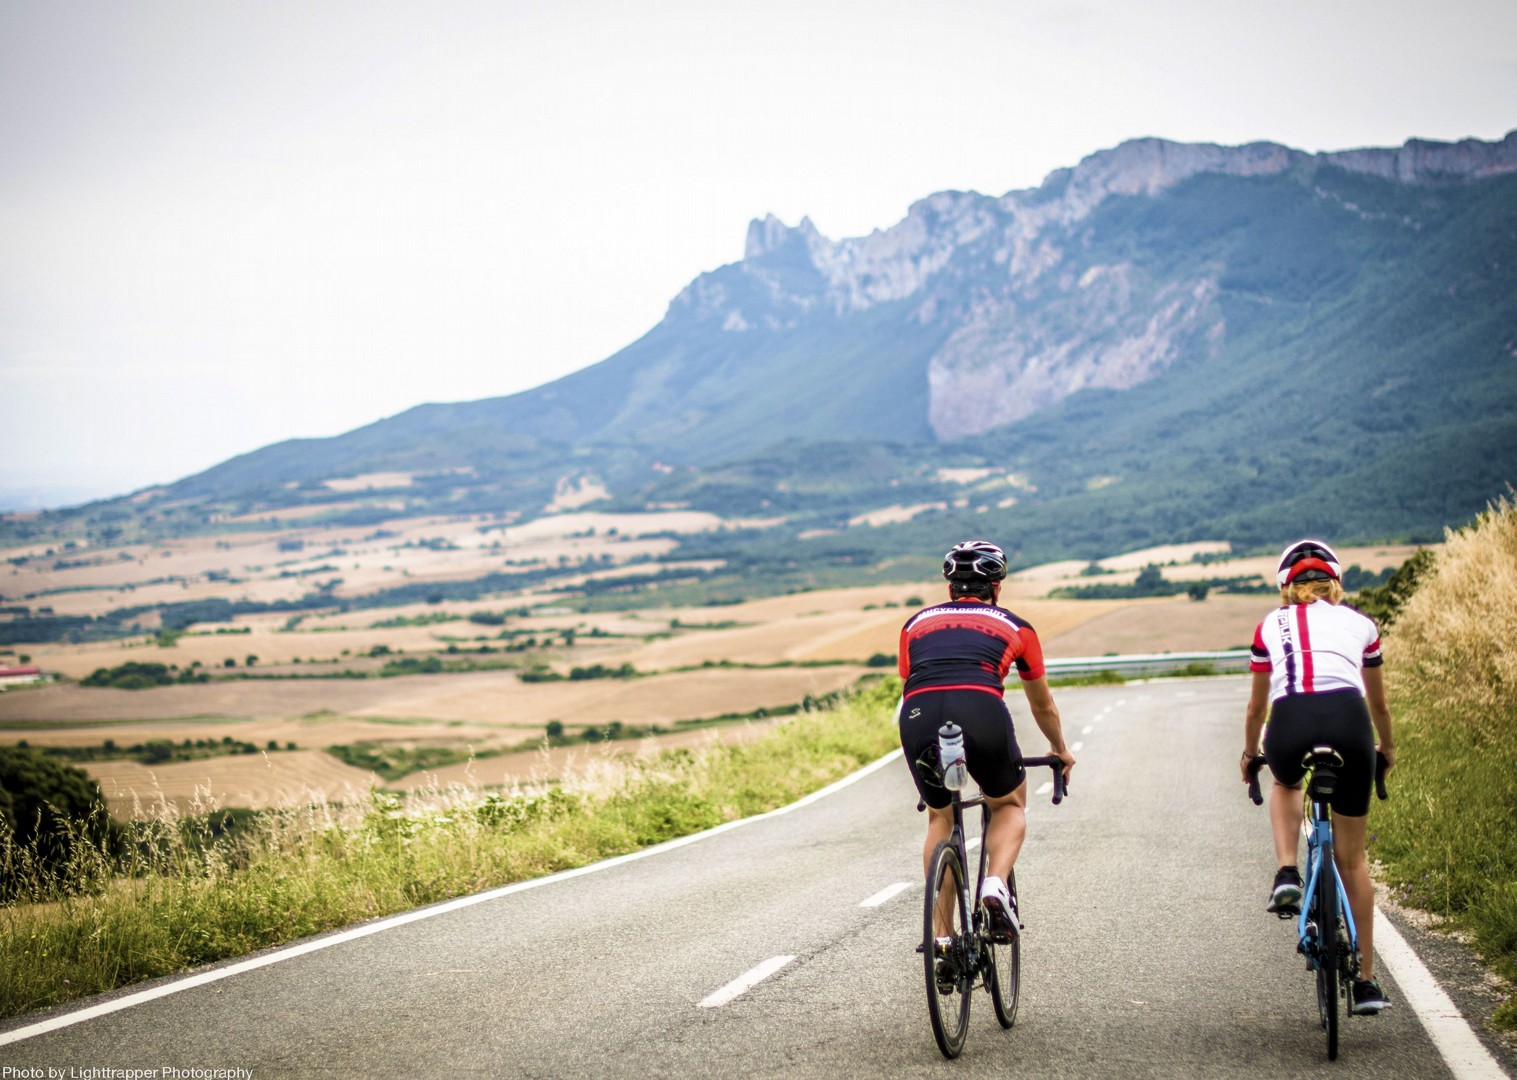 saddle-skedaddle-journey-mountains-tarmac-road-bike.jpg - Northern Spain - La Rioja - Ruta del Vino - Self-Guided Road Cycling Holiday - Road Cycling